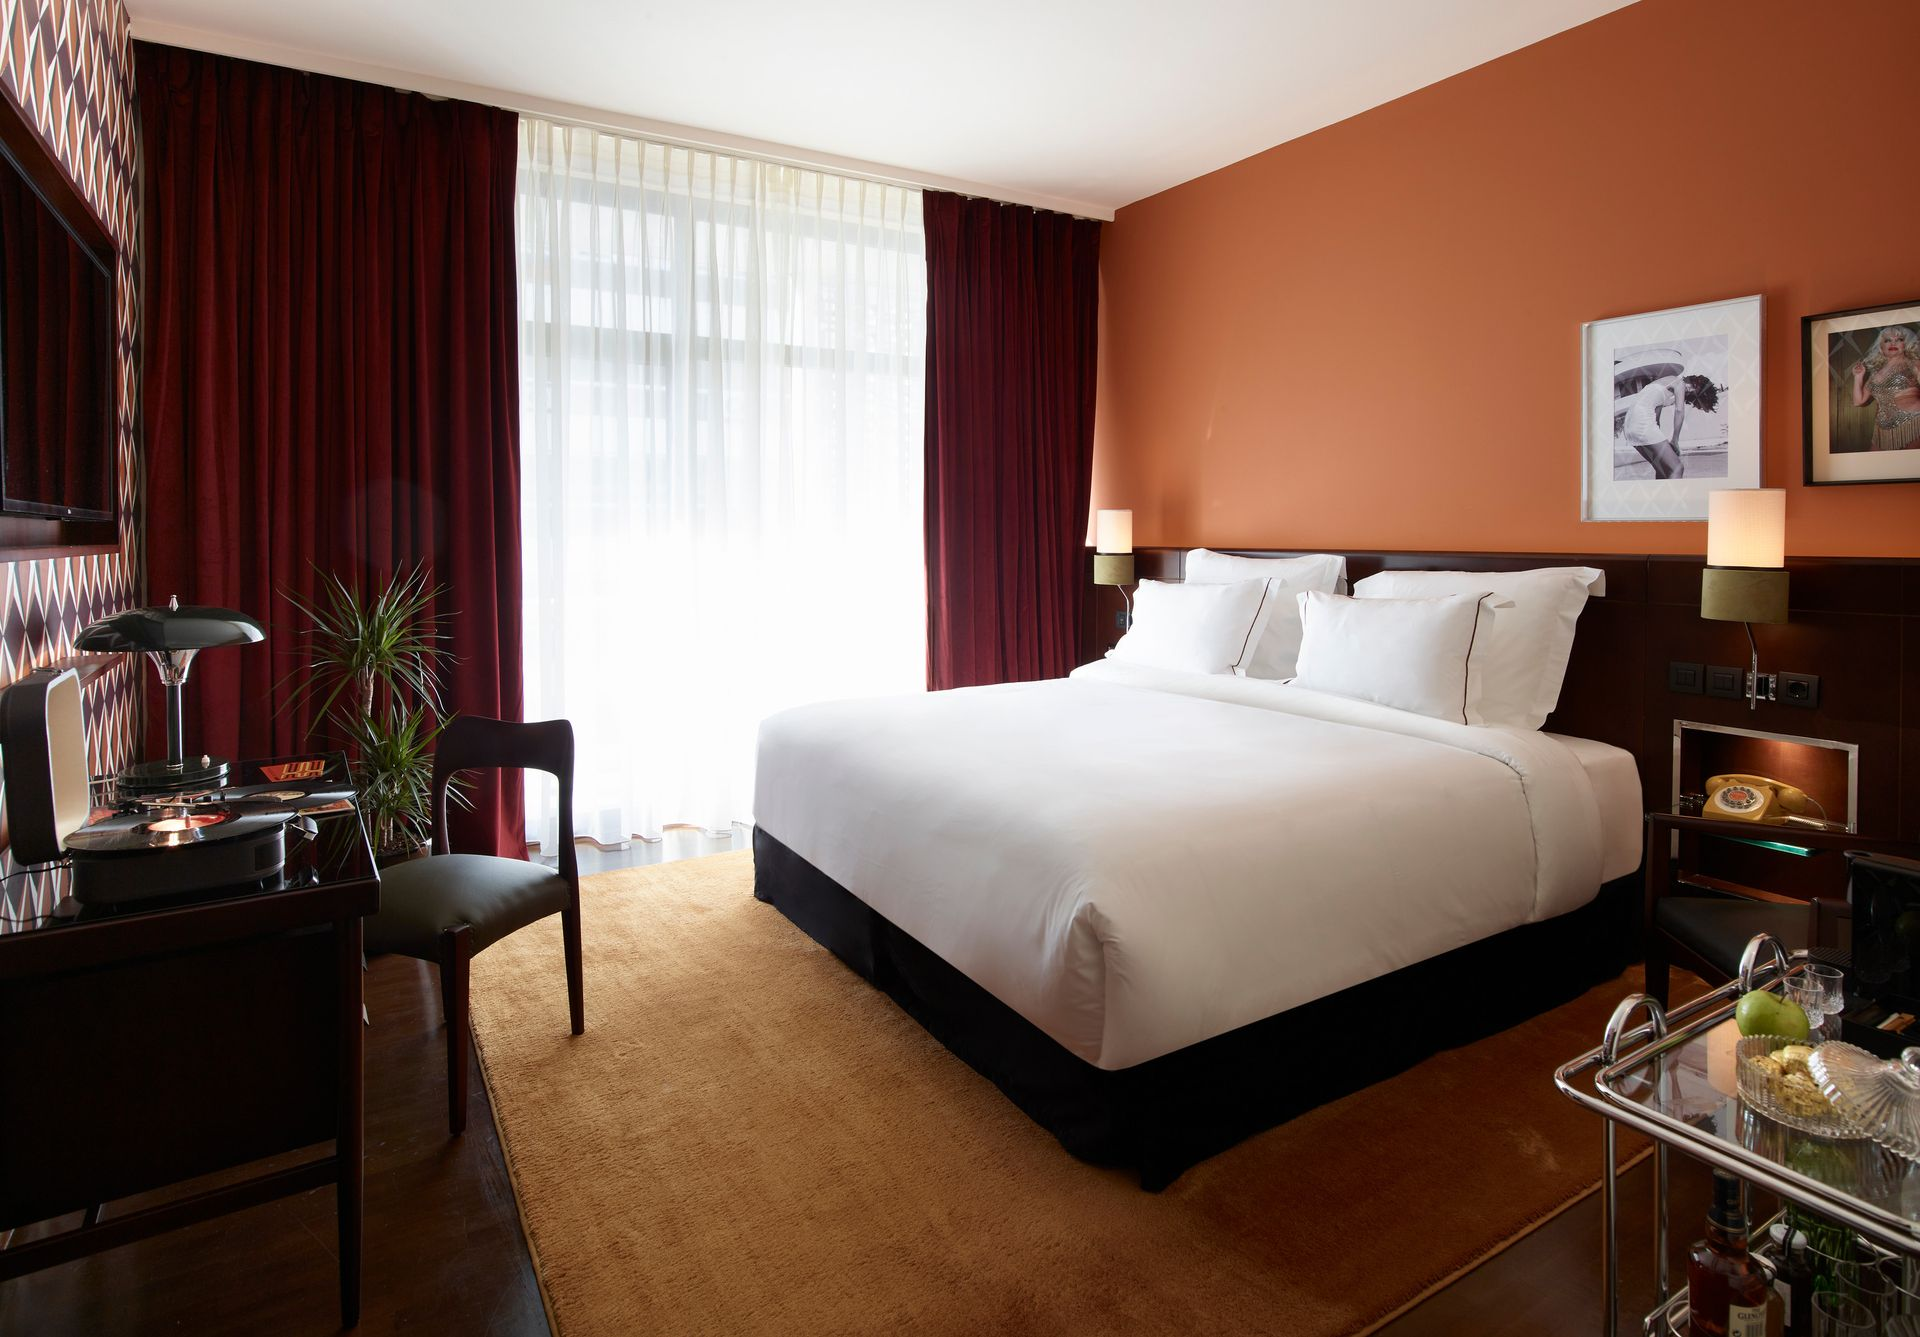 4* Brown Acropol Athens by Brown Hotels - Αθήνα ✦ 2 Ημέρες (1 Διανυκτέρευση) ✦ 2 άτομα ✦ Χωρίς Πρωινό ✦ έως 28/04/2021 ✦ Free Wi - Fi